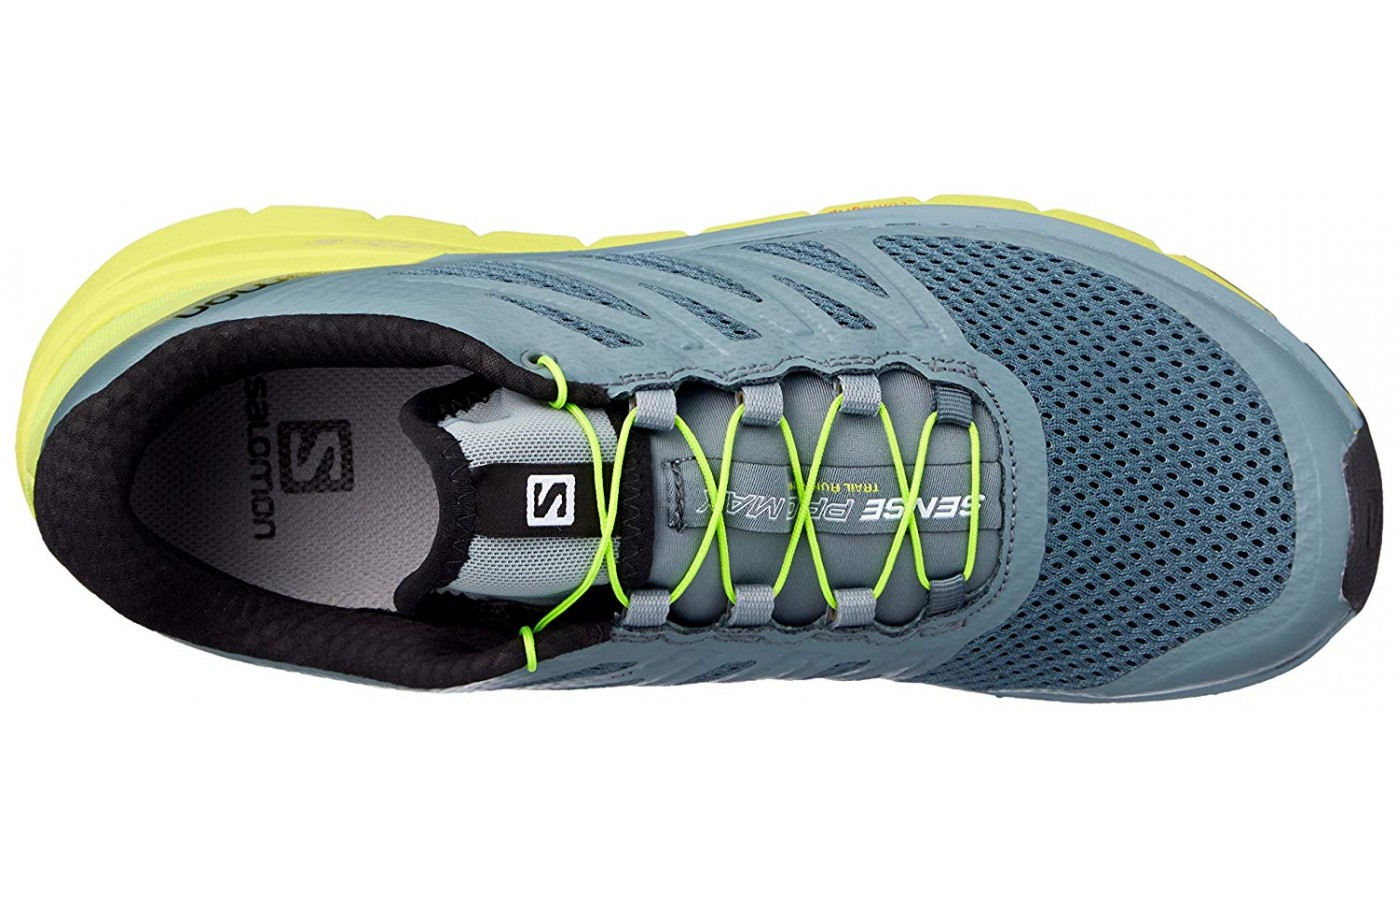 . The Quicklace System means never worrying about shoes coming undone.